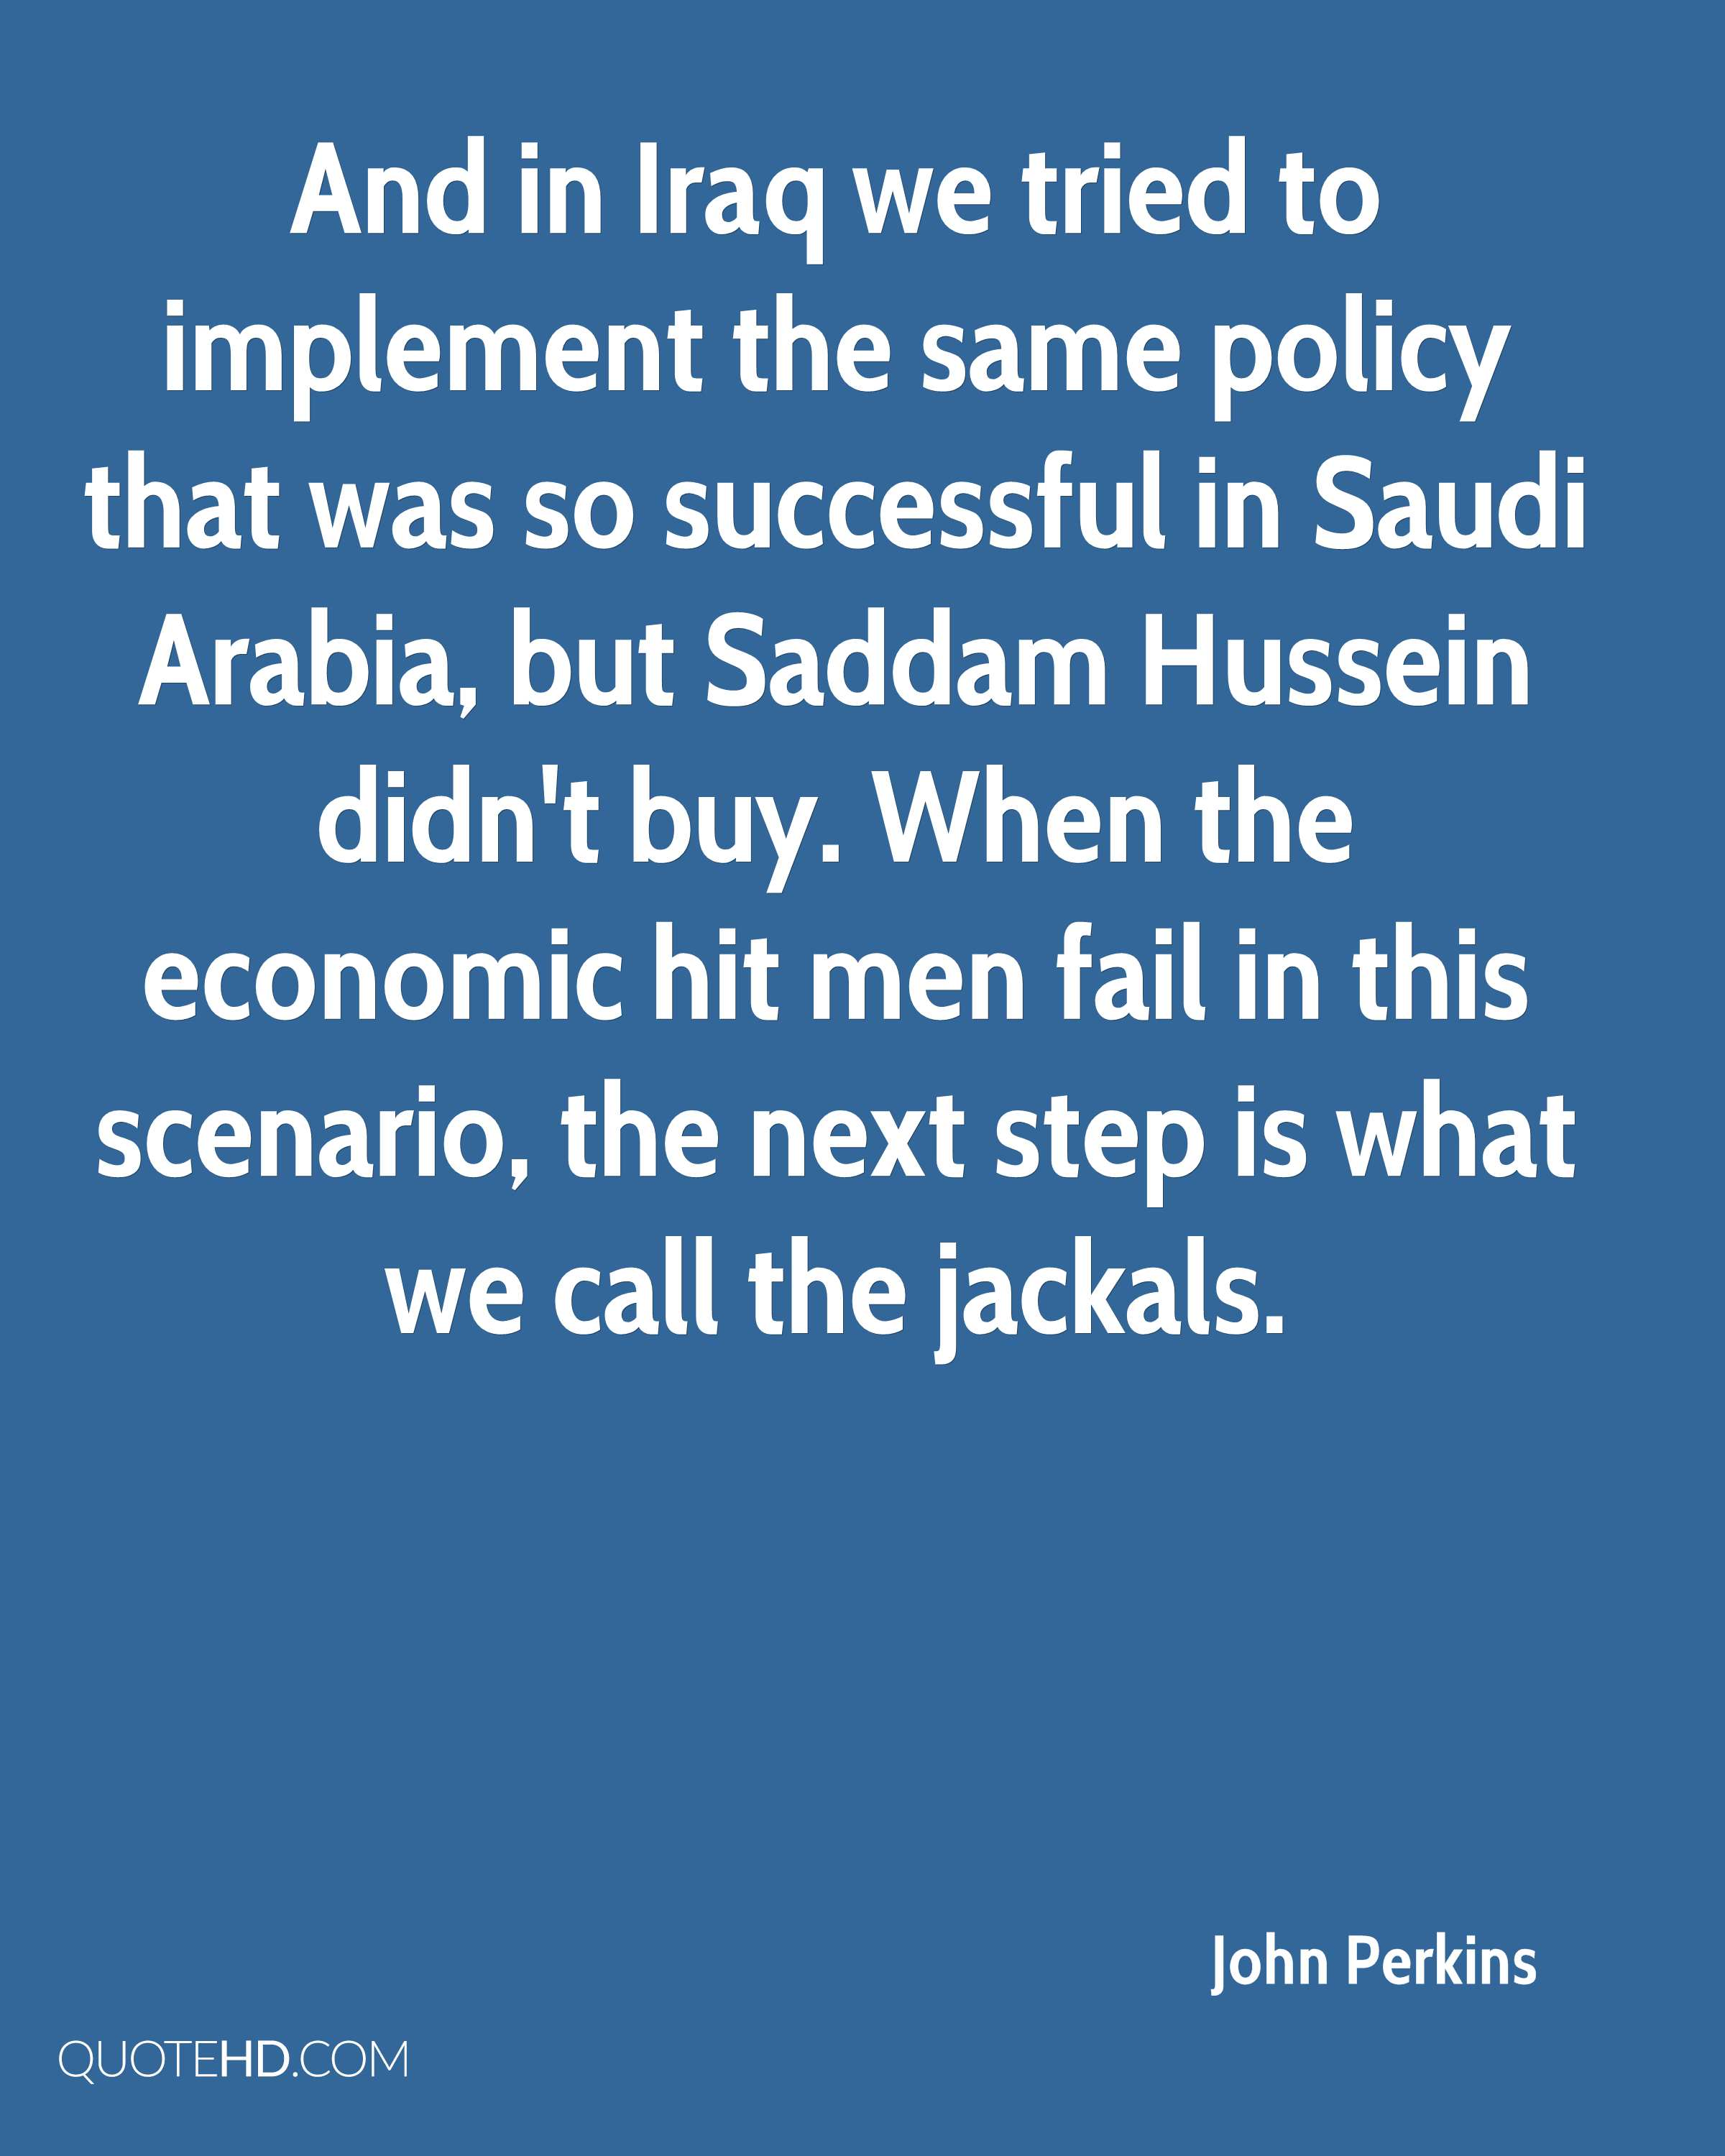 And in Iraq we tried to implement the same policy that was so successful in Saudi Arabia, but Saddam Hussein didn't buy. When the economic hit men fail in this scenario, the next step is what we call the jackals.